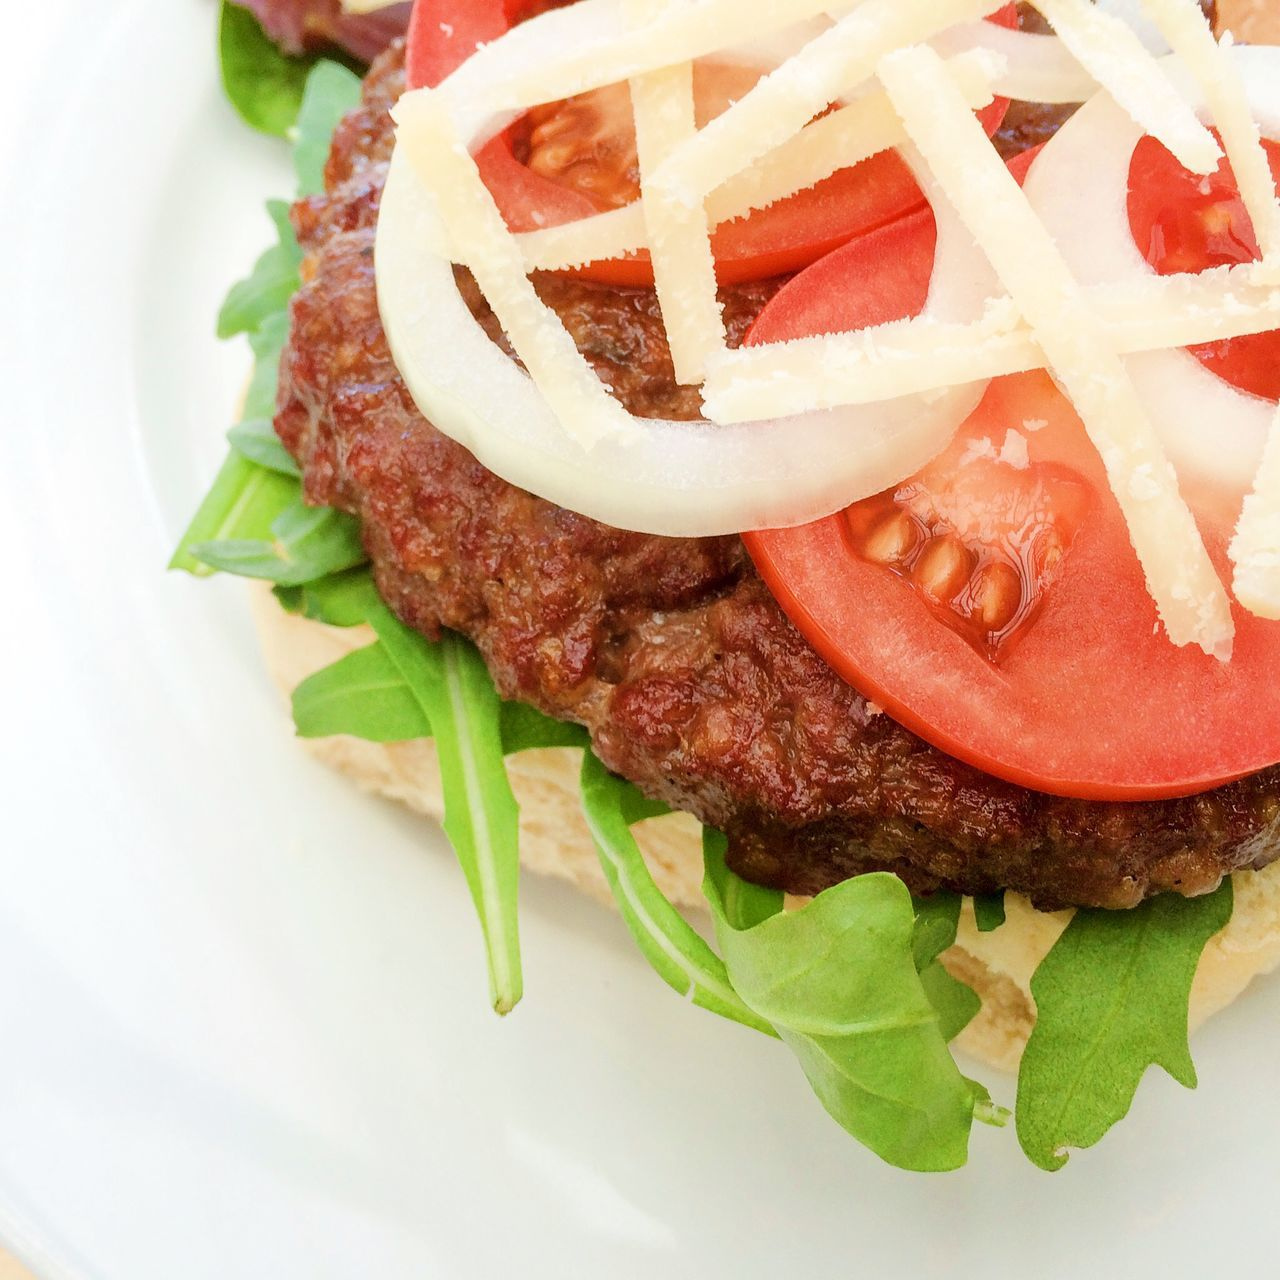 Close-Up Of Burger Served On Plate